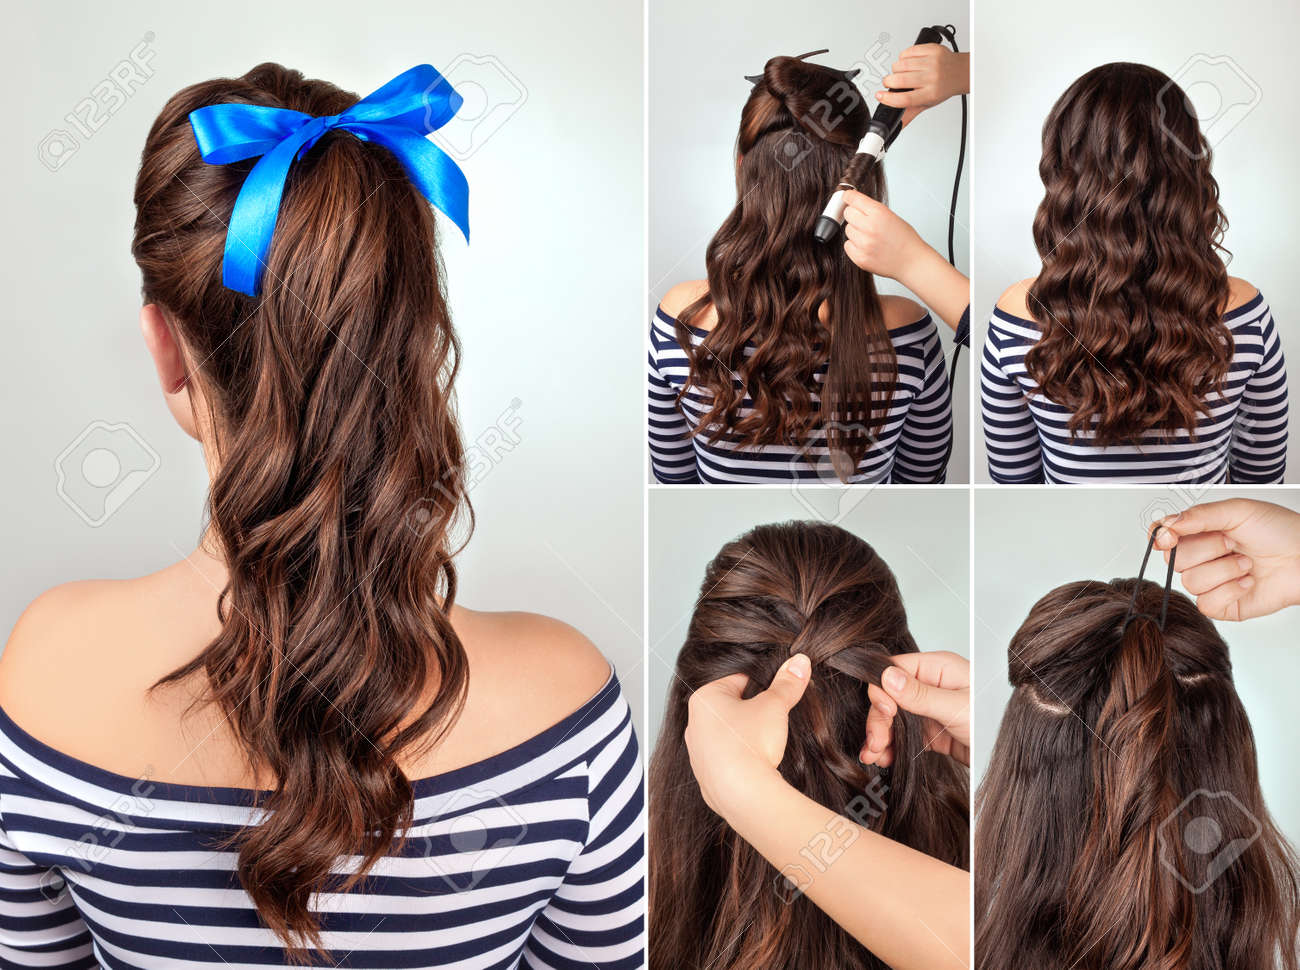 Simple Hairstyle Pony Tail On Curly Hair Tutorial. Hairstyle.. Stock ...